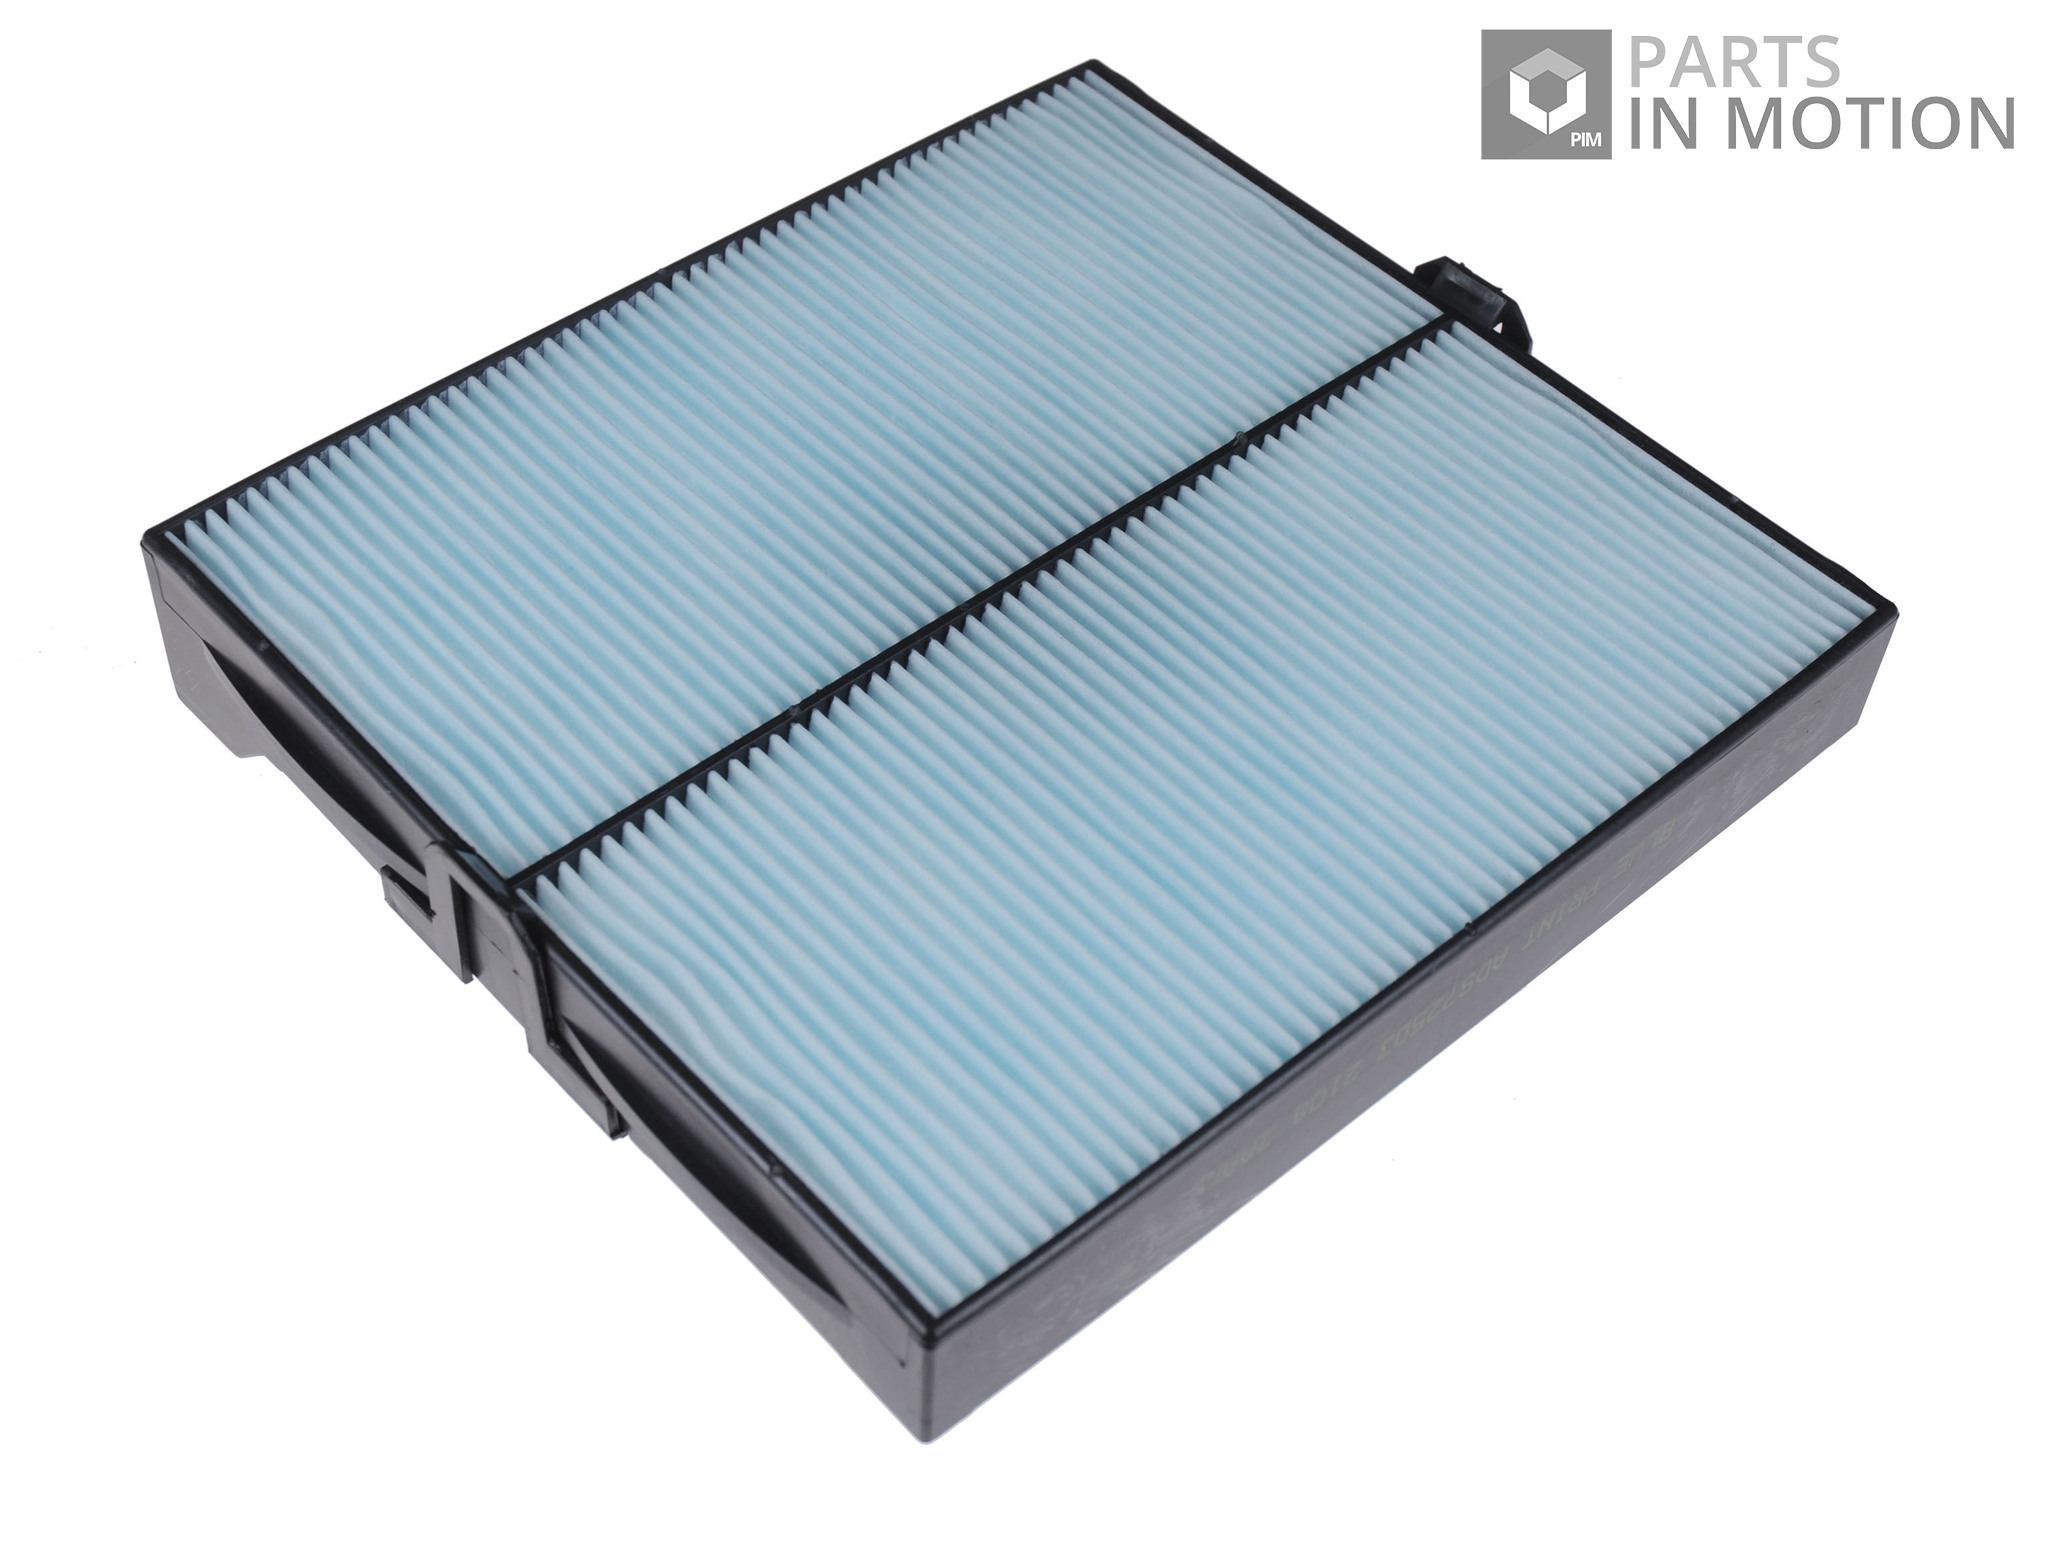 Pollen cabin filter fits subaru forester 2 5 2005 on for Cabin air filter subaru forester